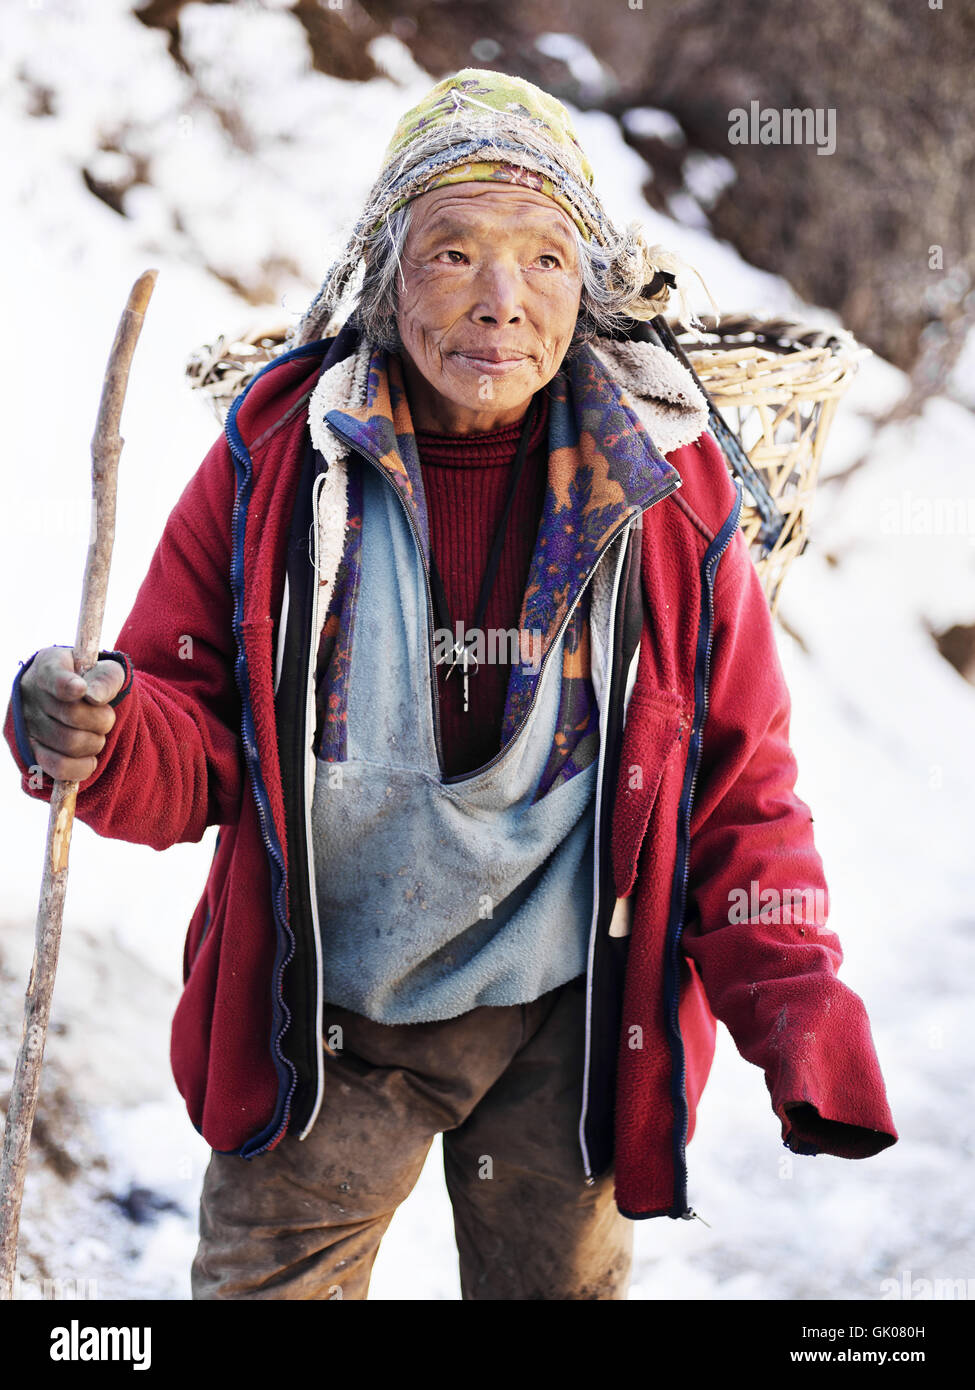 Man carrying goods in a homemade basket backpack across the Himalayas near Pheriche, Nepal. - Stock Image